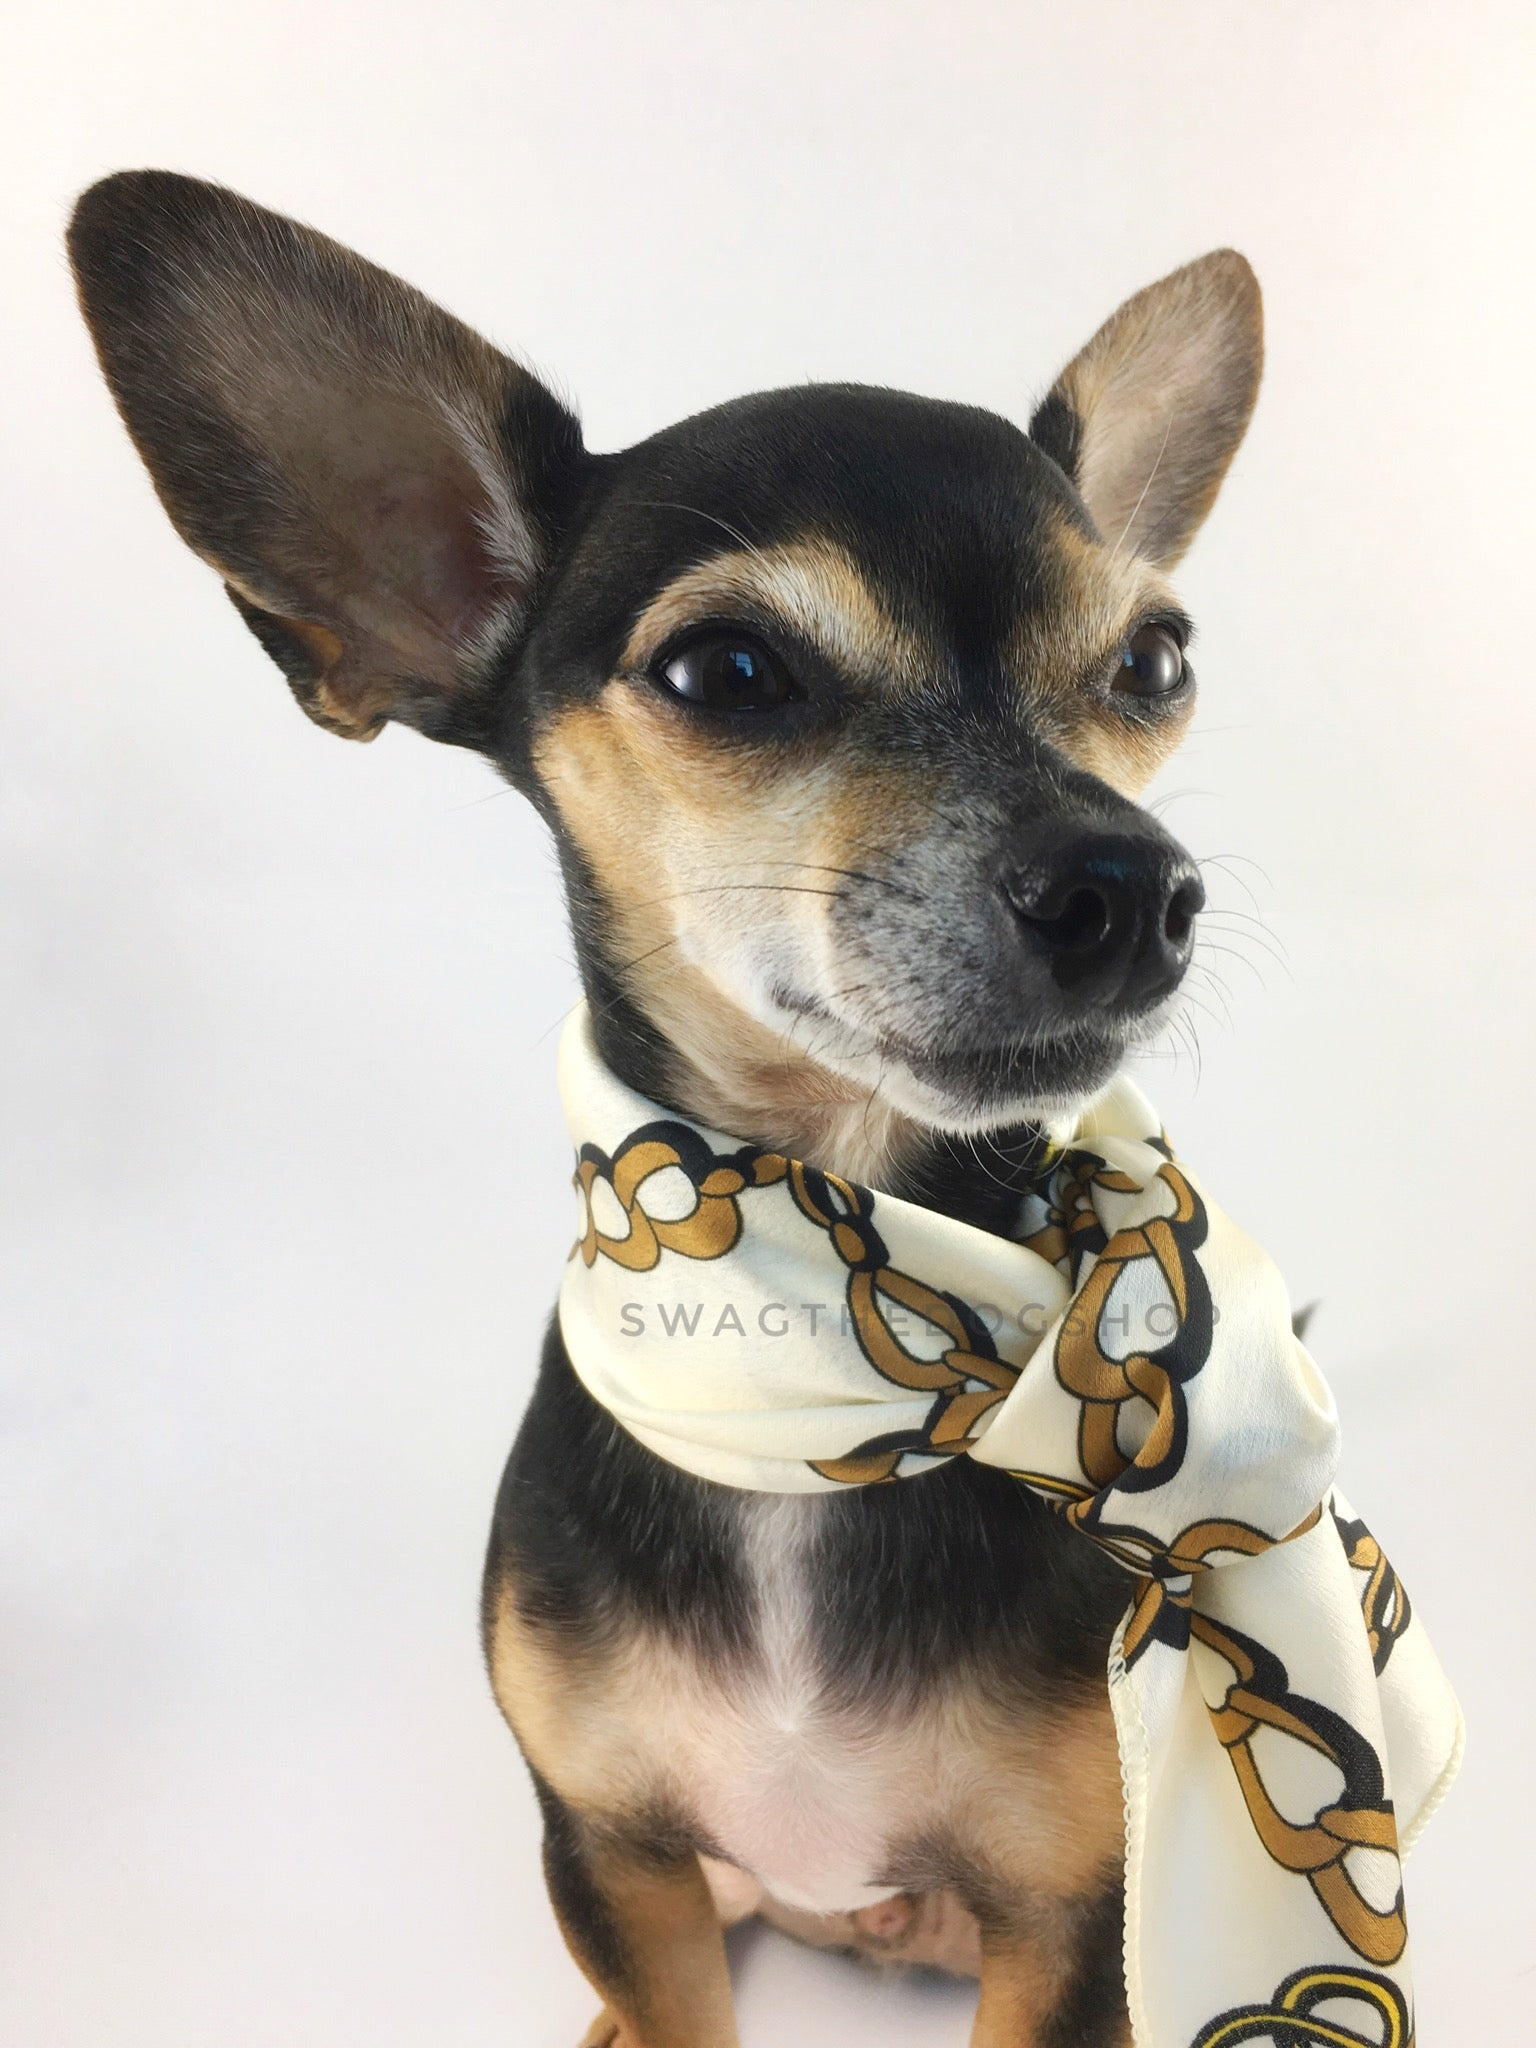 24K Vanilla Gold Swagdana Scarf - Bust of Cute Chihuahua Wearing Swagdana Scarf as Neckerchief. Dog Bandana. Dog Scarf